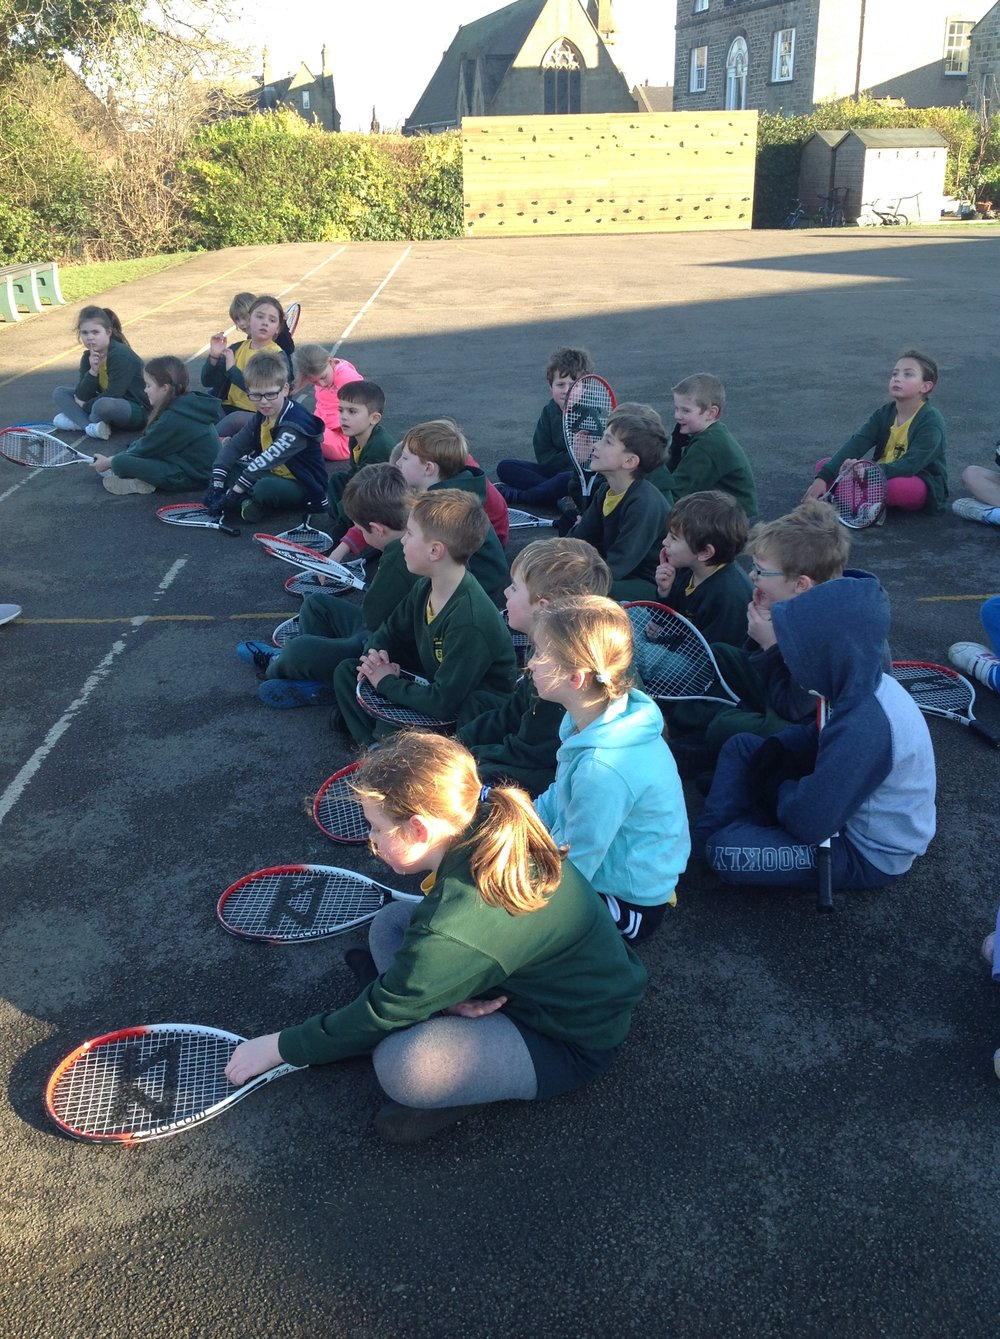 Year 3 are enjoying tennis training each week. We are improving our strokes and having lots of fun games.